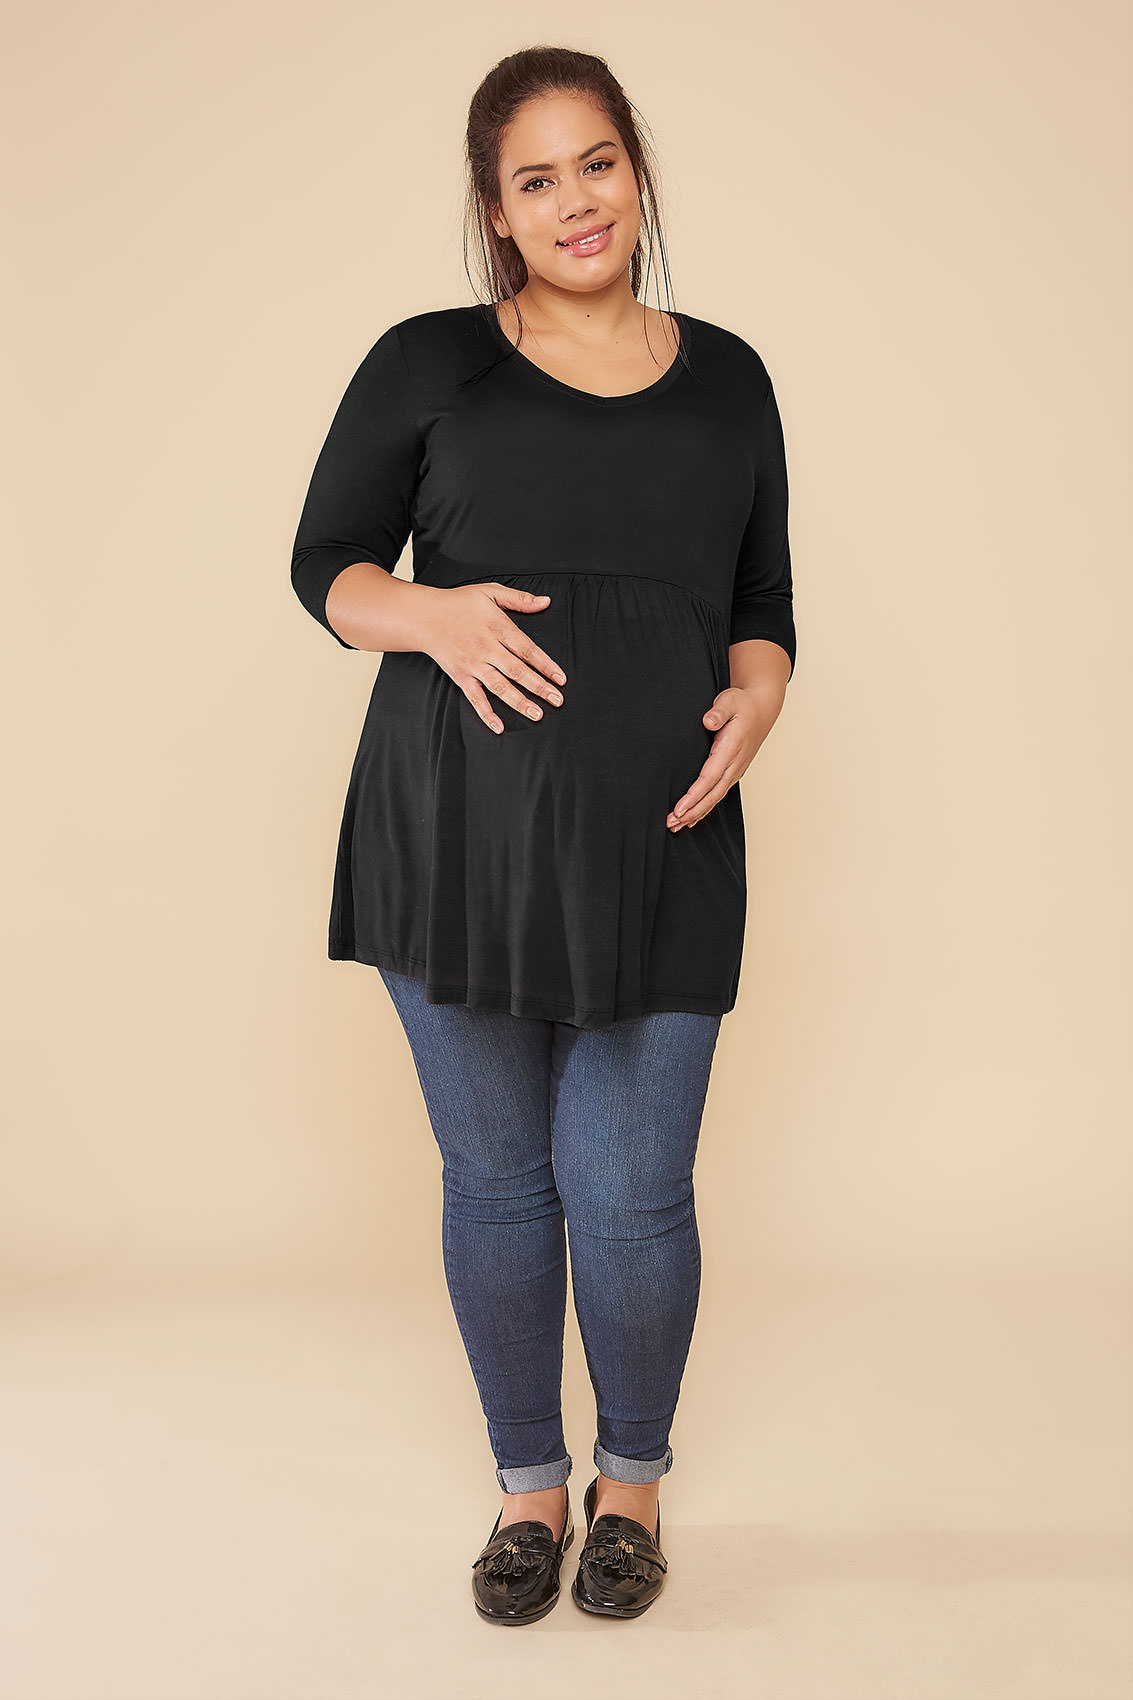 Design your maternity wardrobe with our range of plus size maternity clothing. Combining comfort and style, shop new-season pieces in sizes 14 to Best loved plus size clothes size 16 to